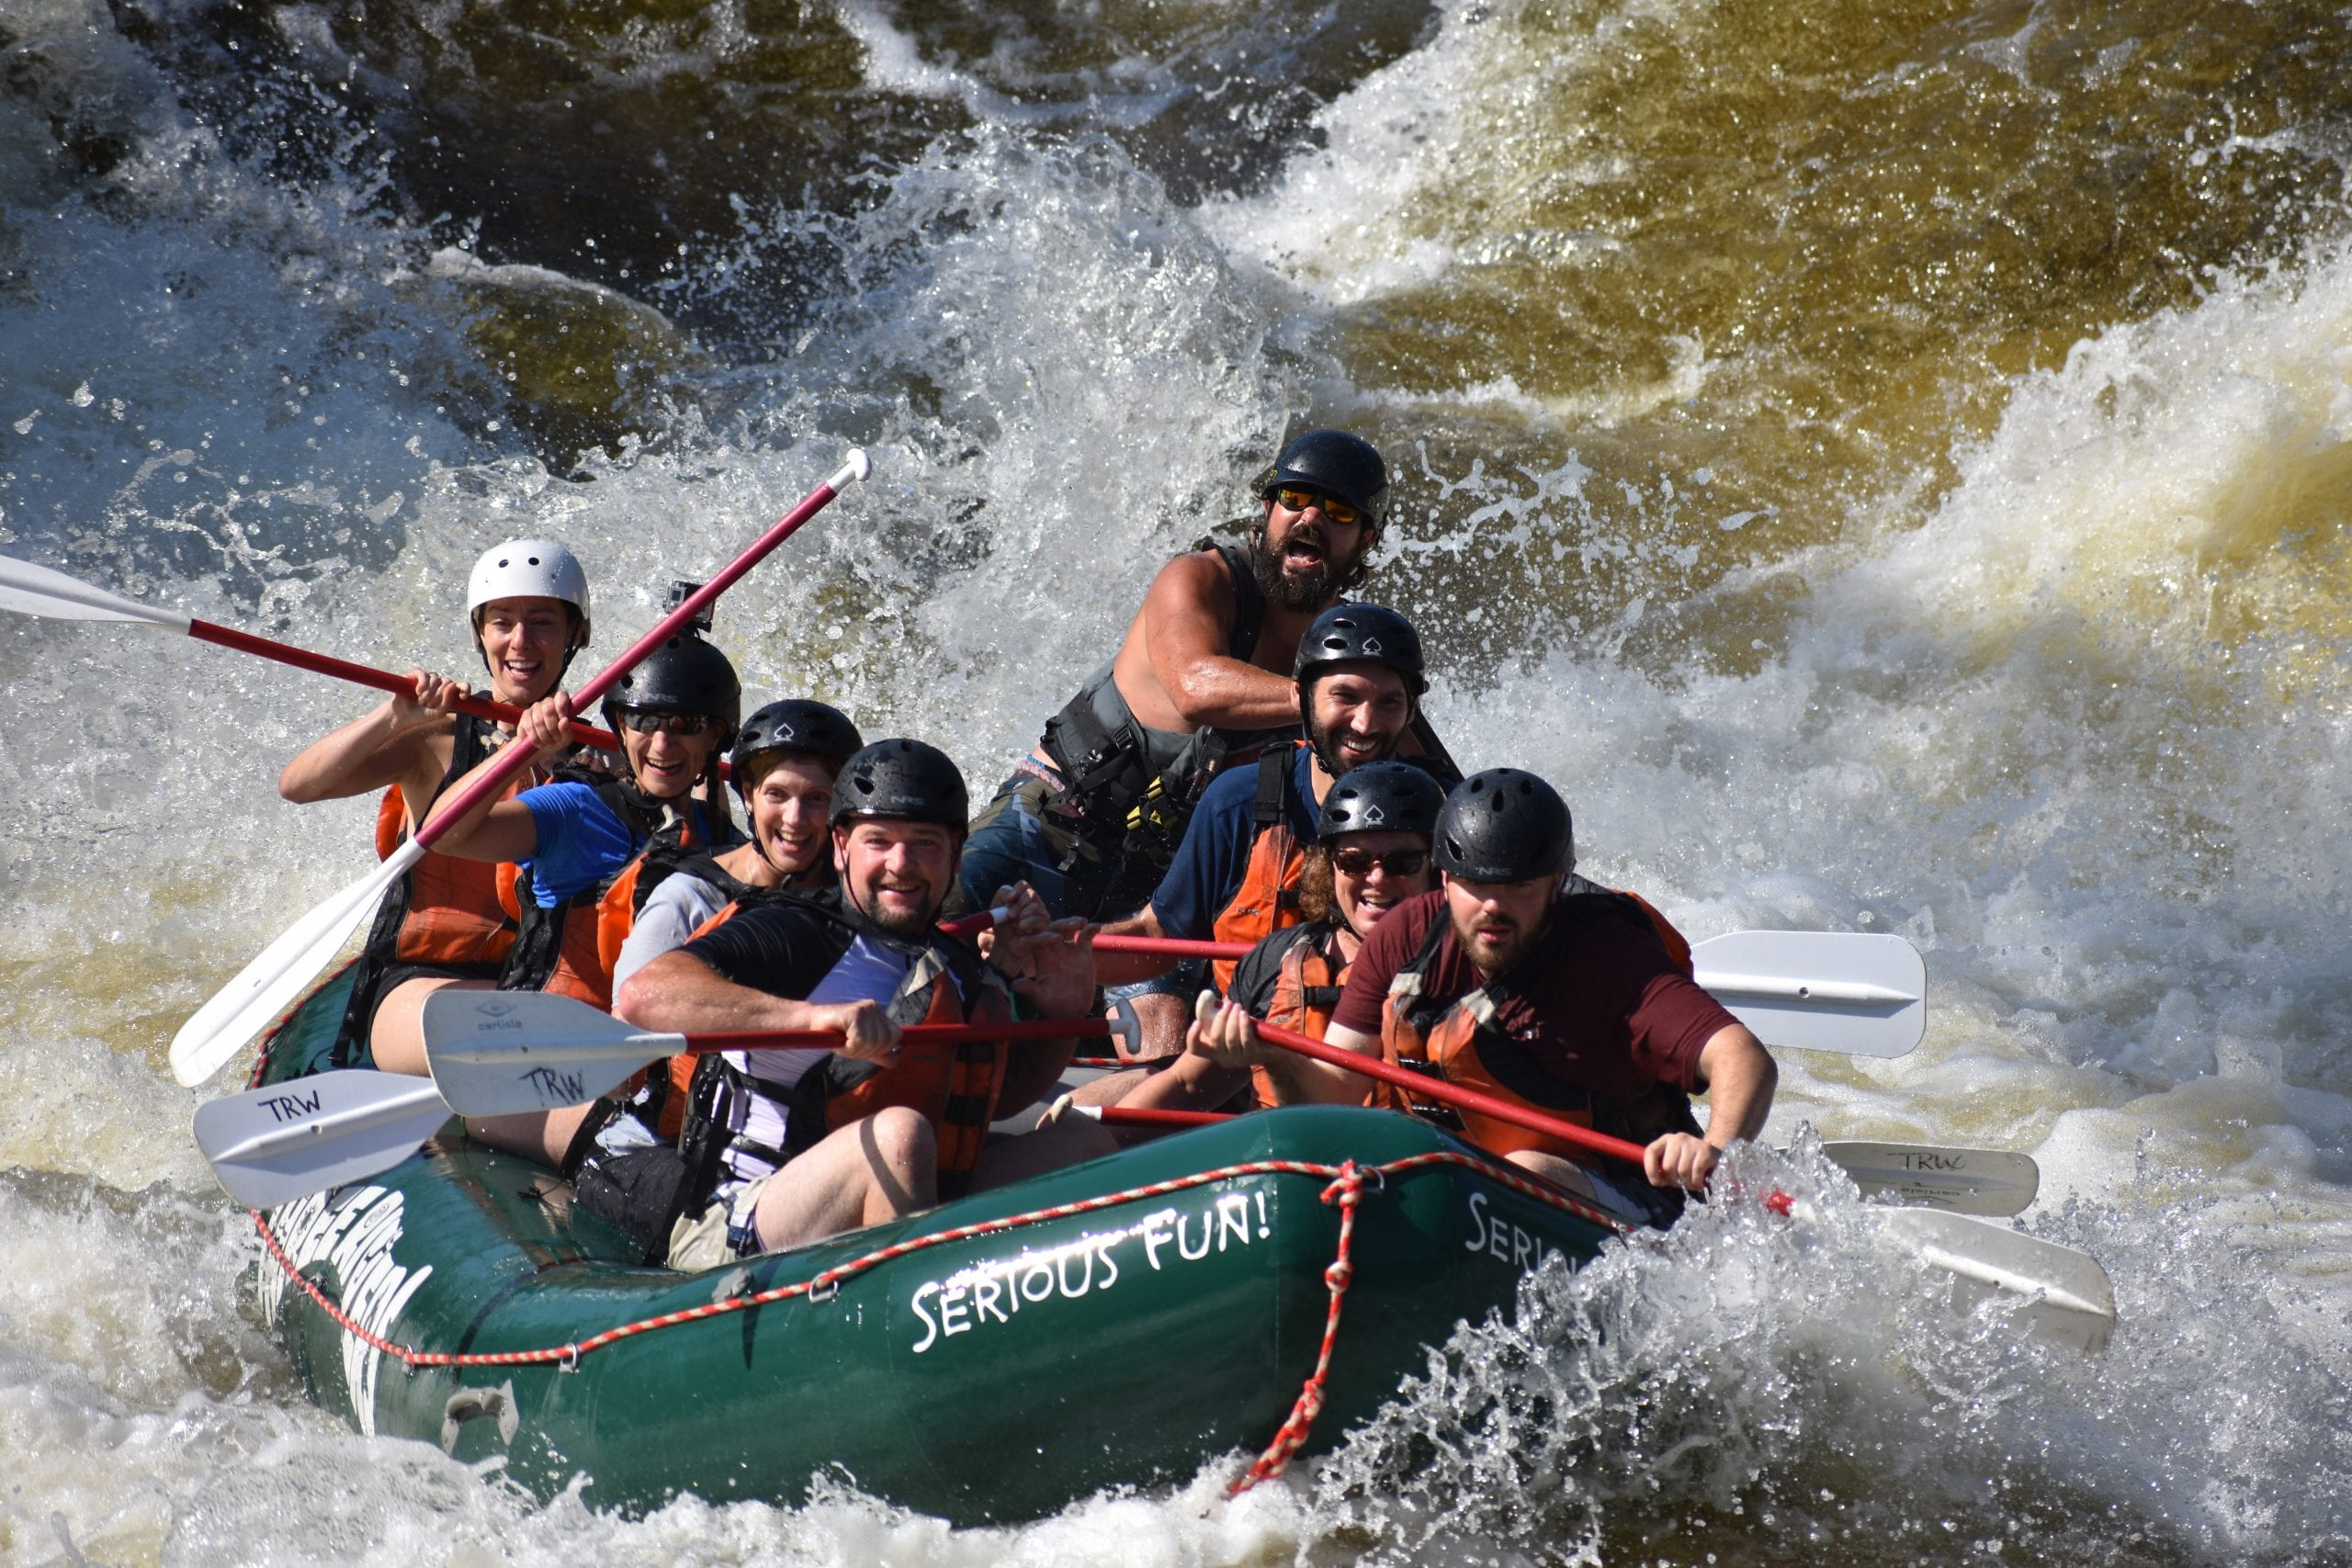 Photo Copyright Three Rivers Whitewater